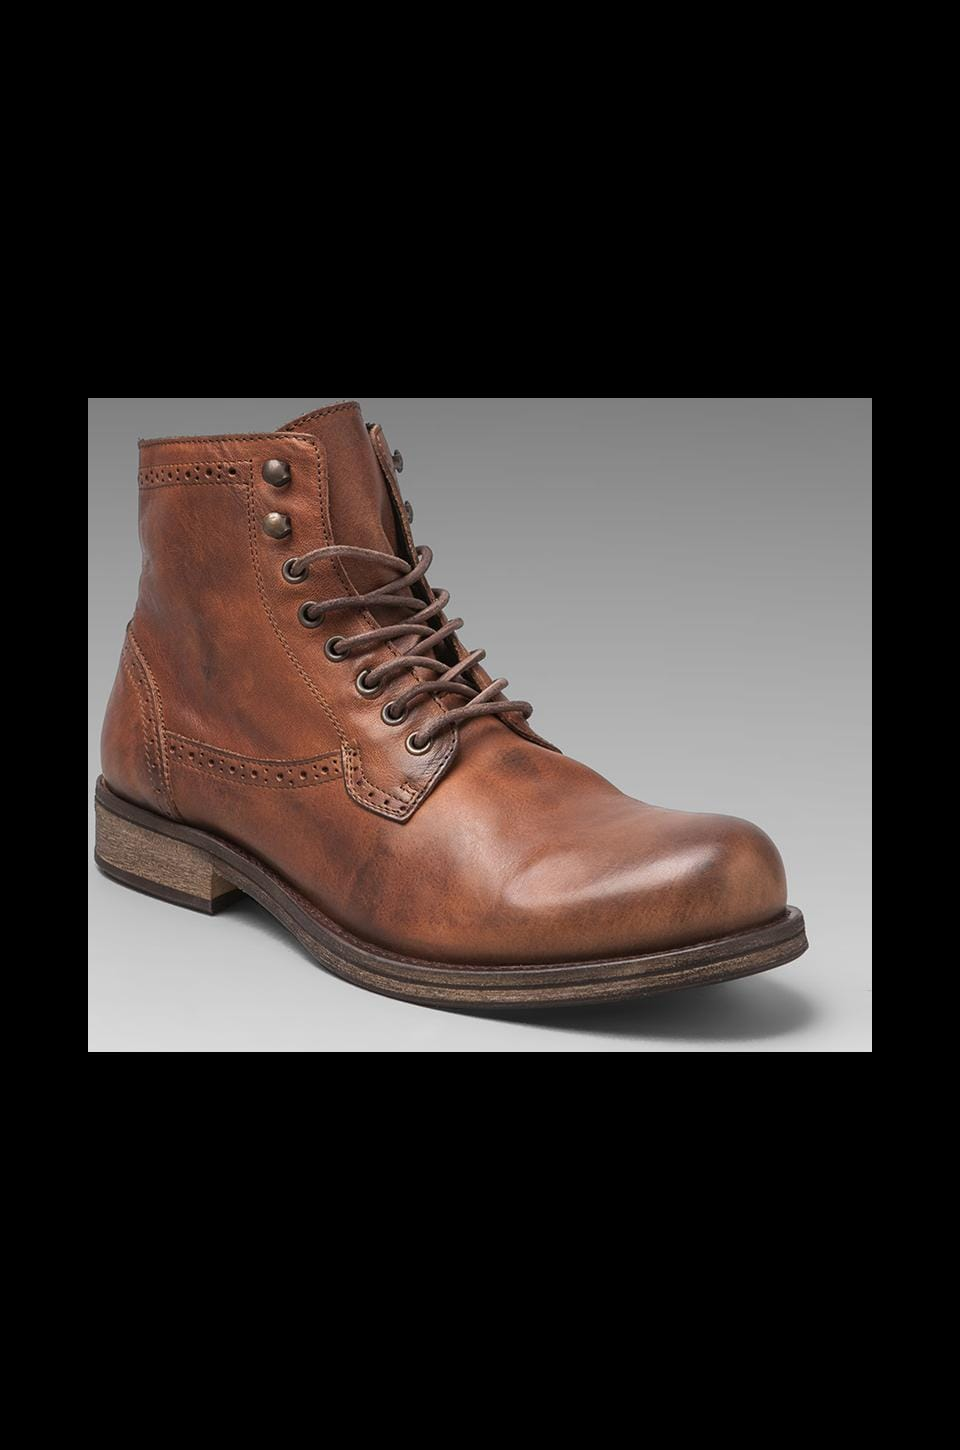 H by Hudson Rycroft Boot in Tan